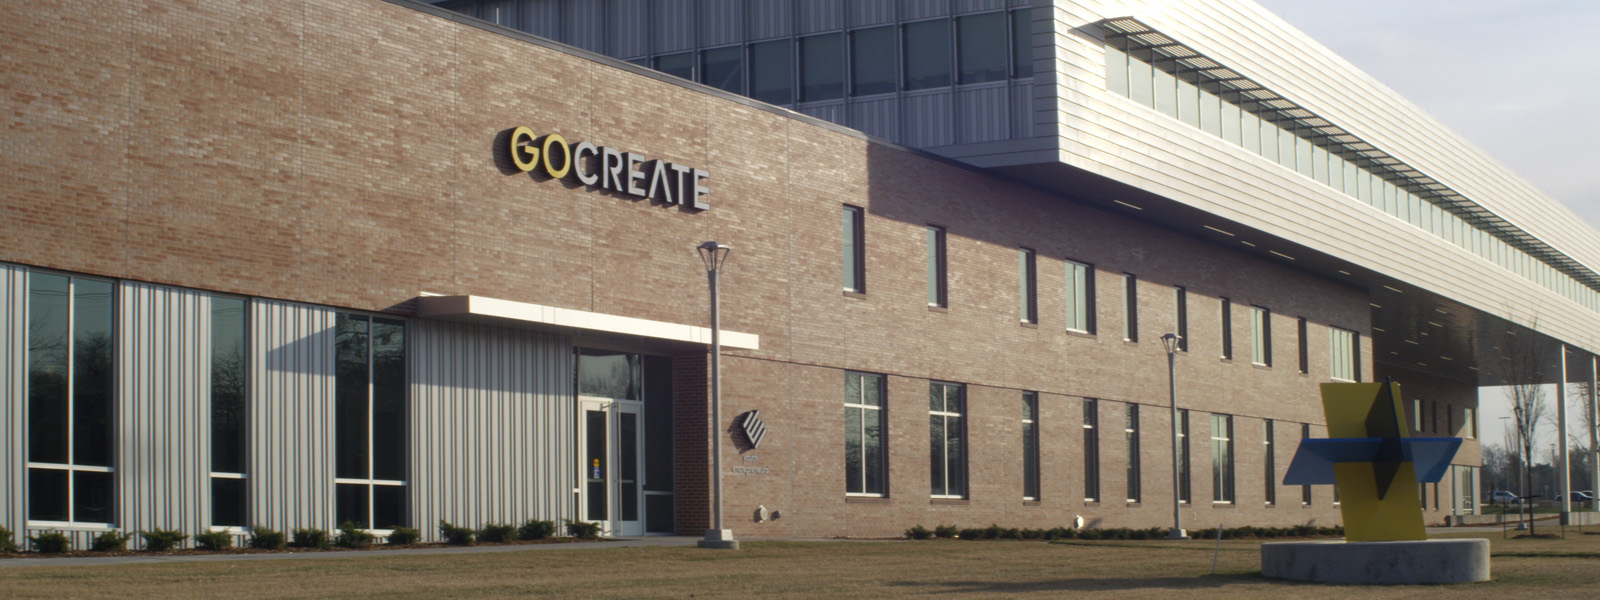 GoCreate, Youth Entrepreneurs to hold public grand opening Saturday